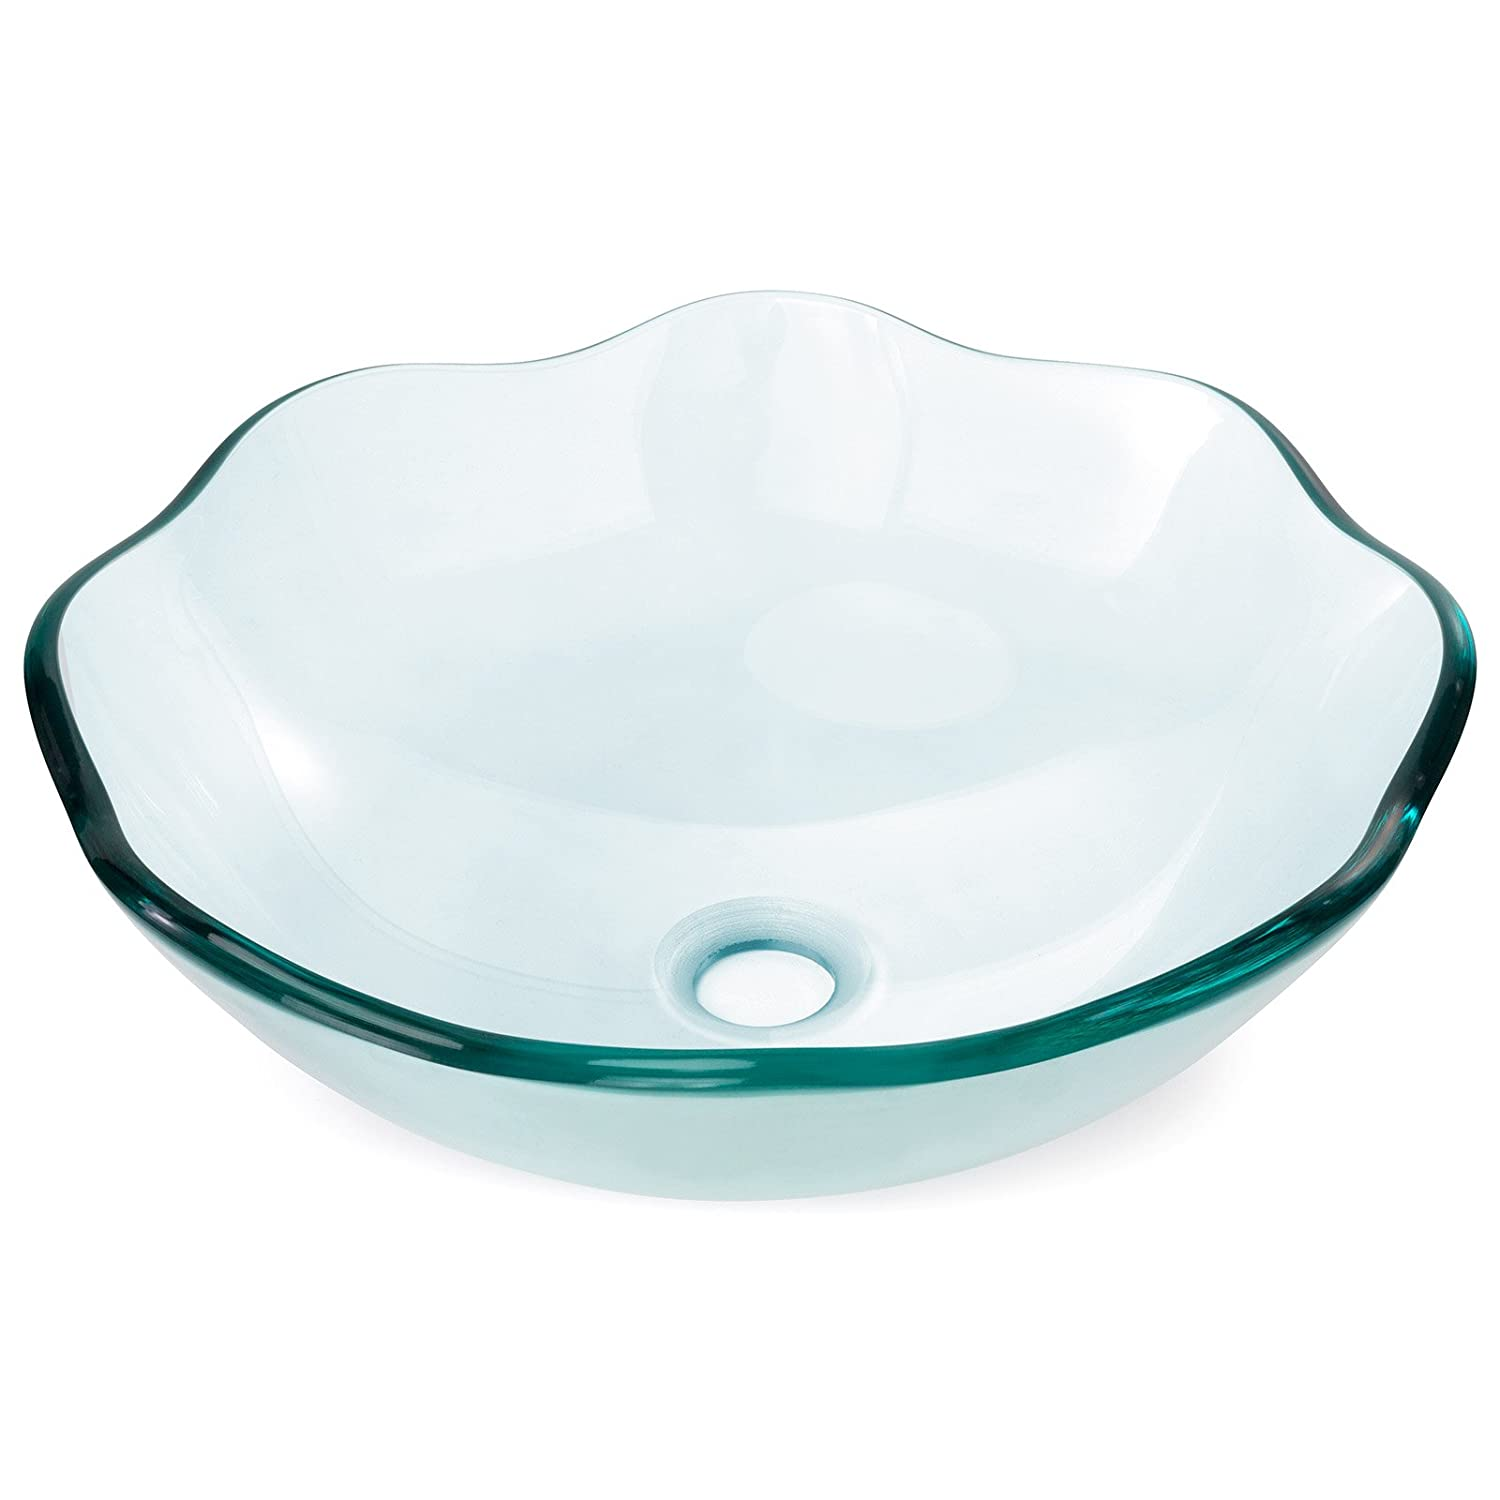 Miligoré Modern Glass Vessel Sink ...